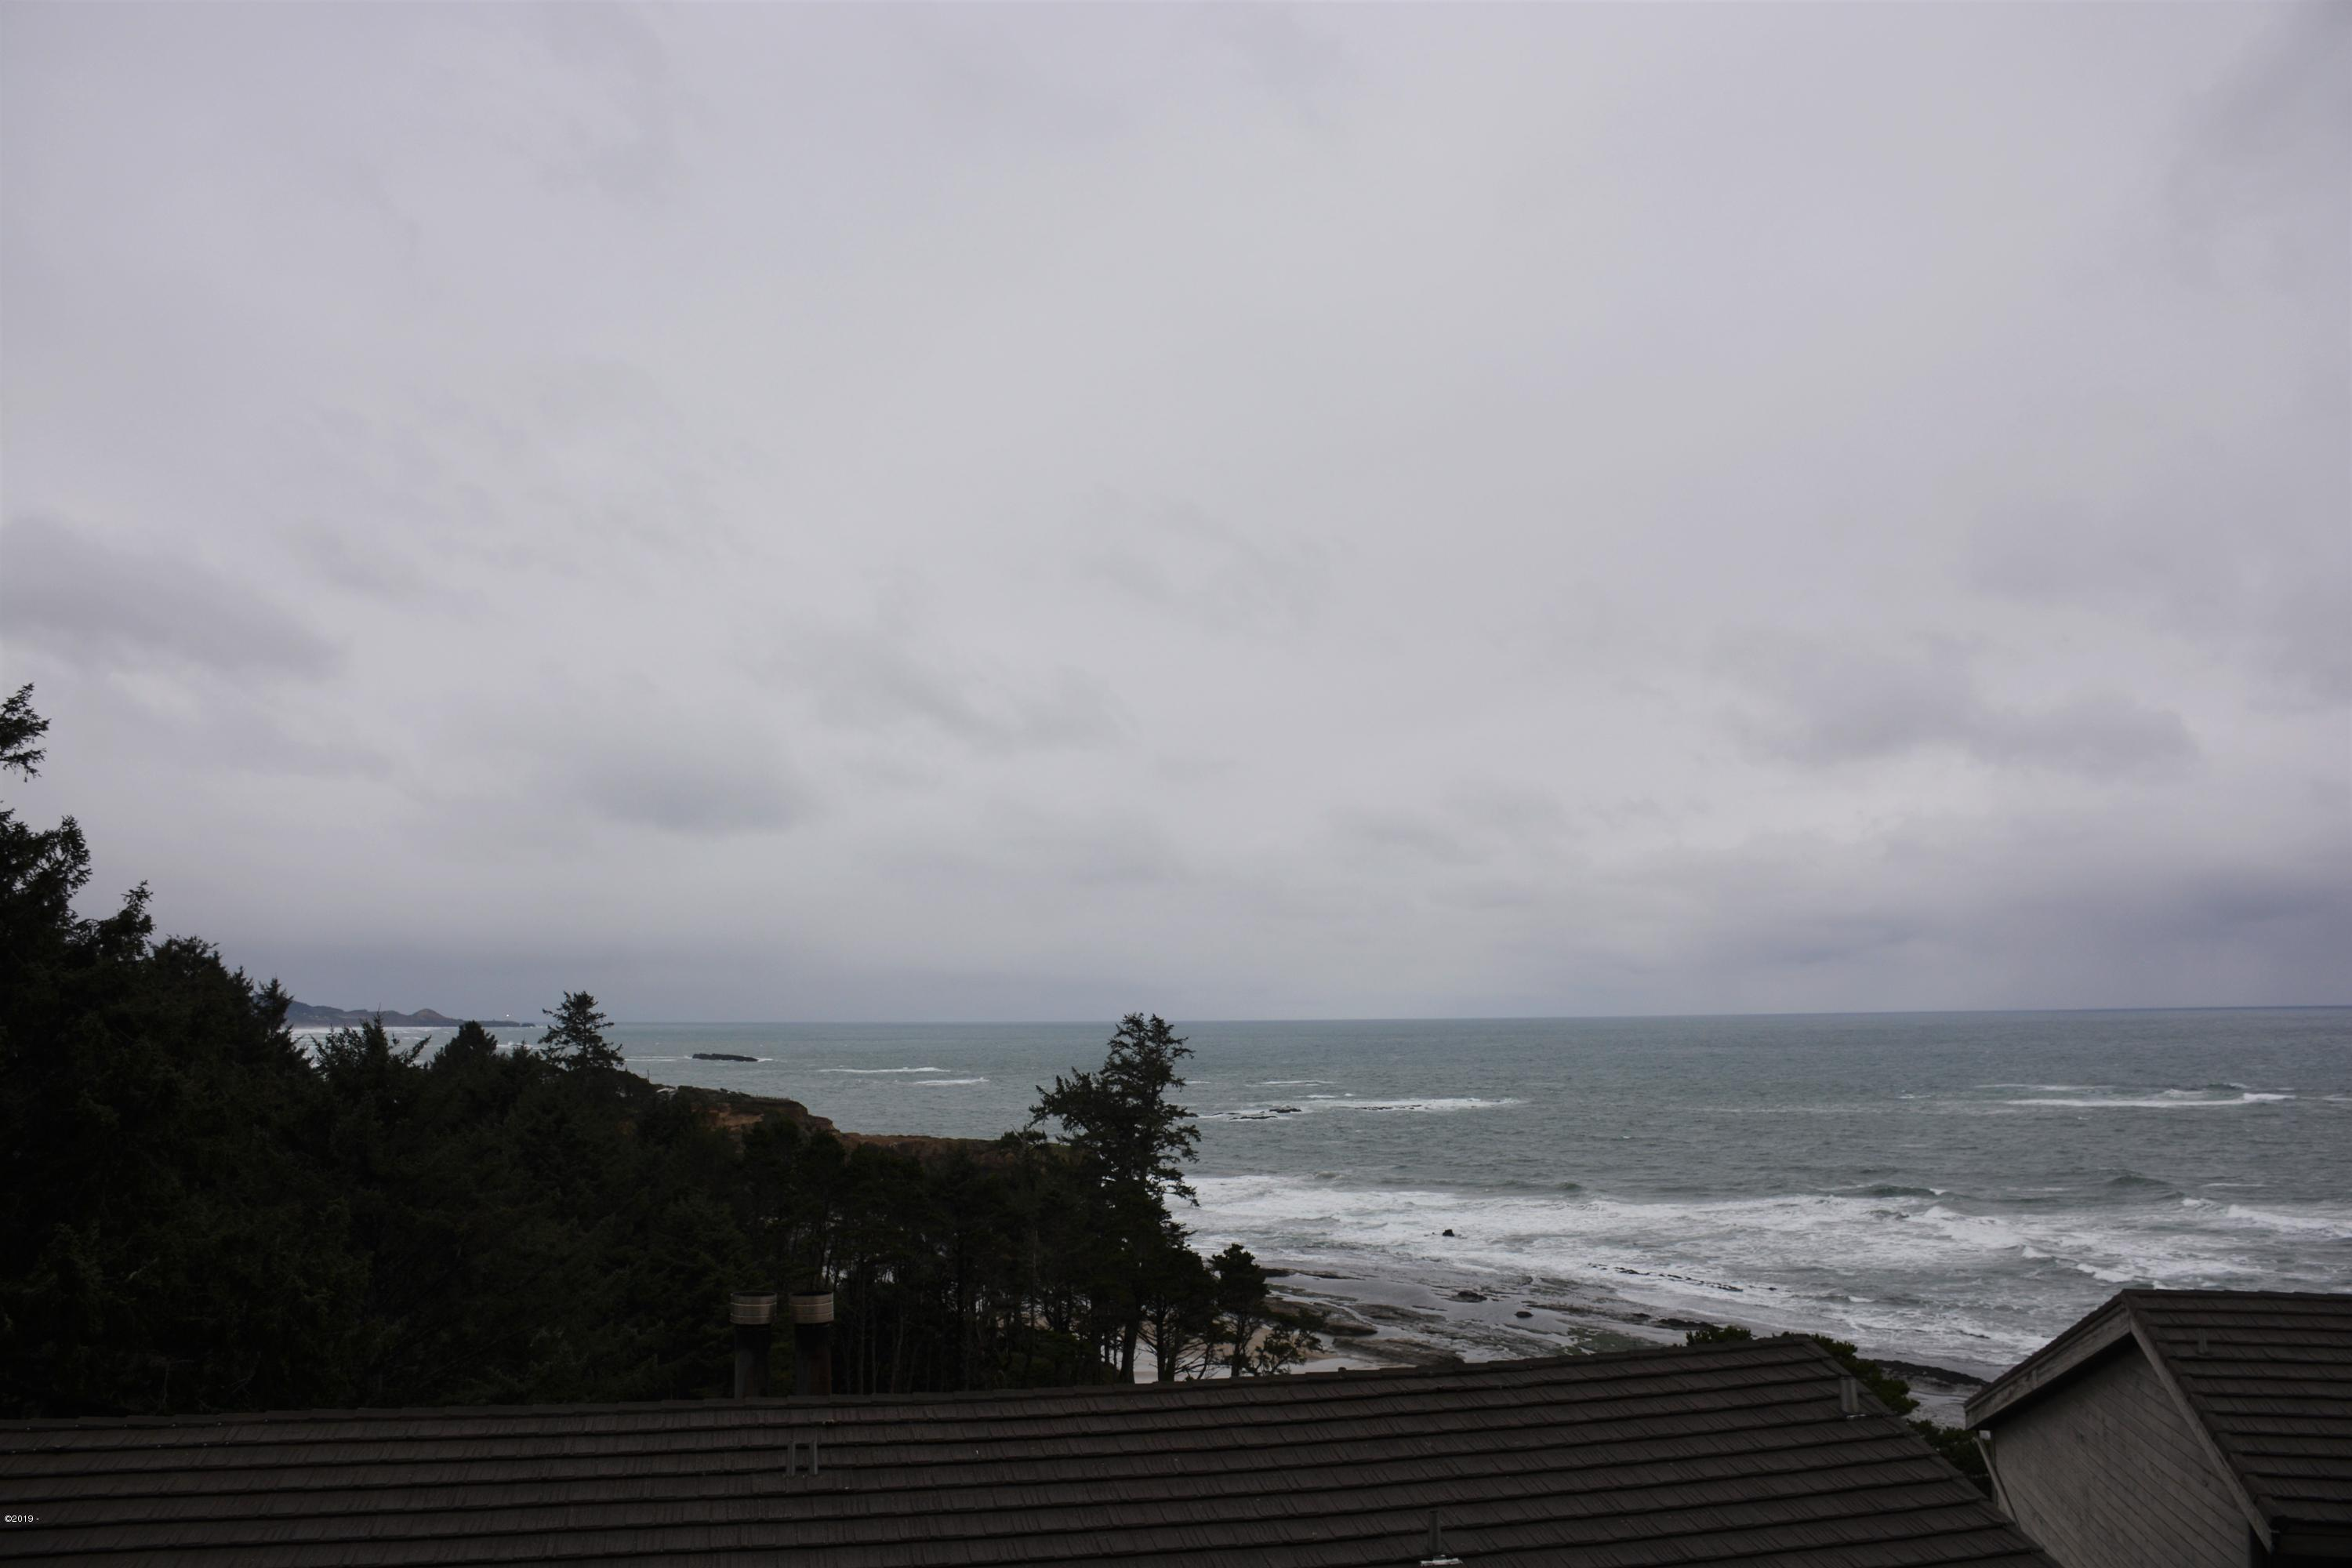 301 Otter Crest Drive, #400-401, Otter Rock, OR 97369 - View 1 - stormy day